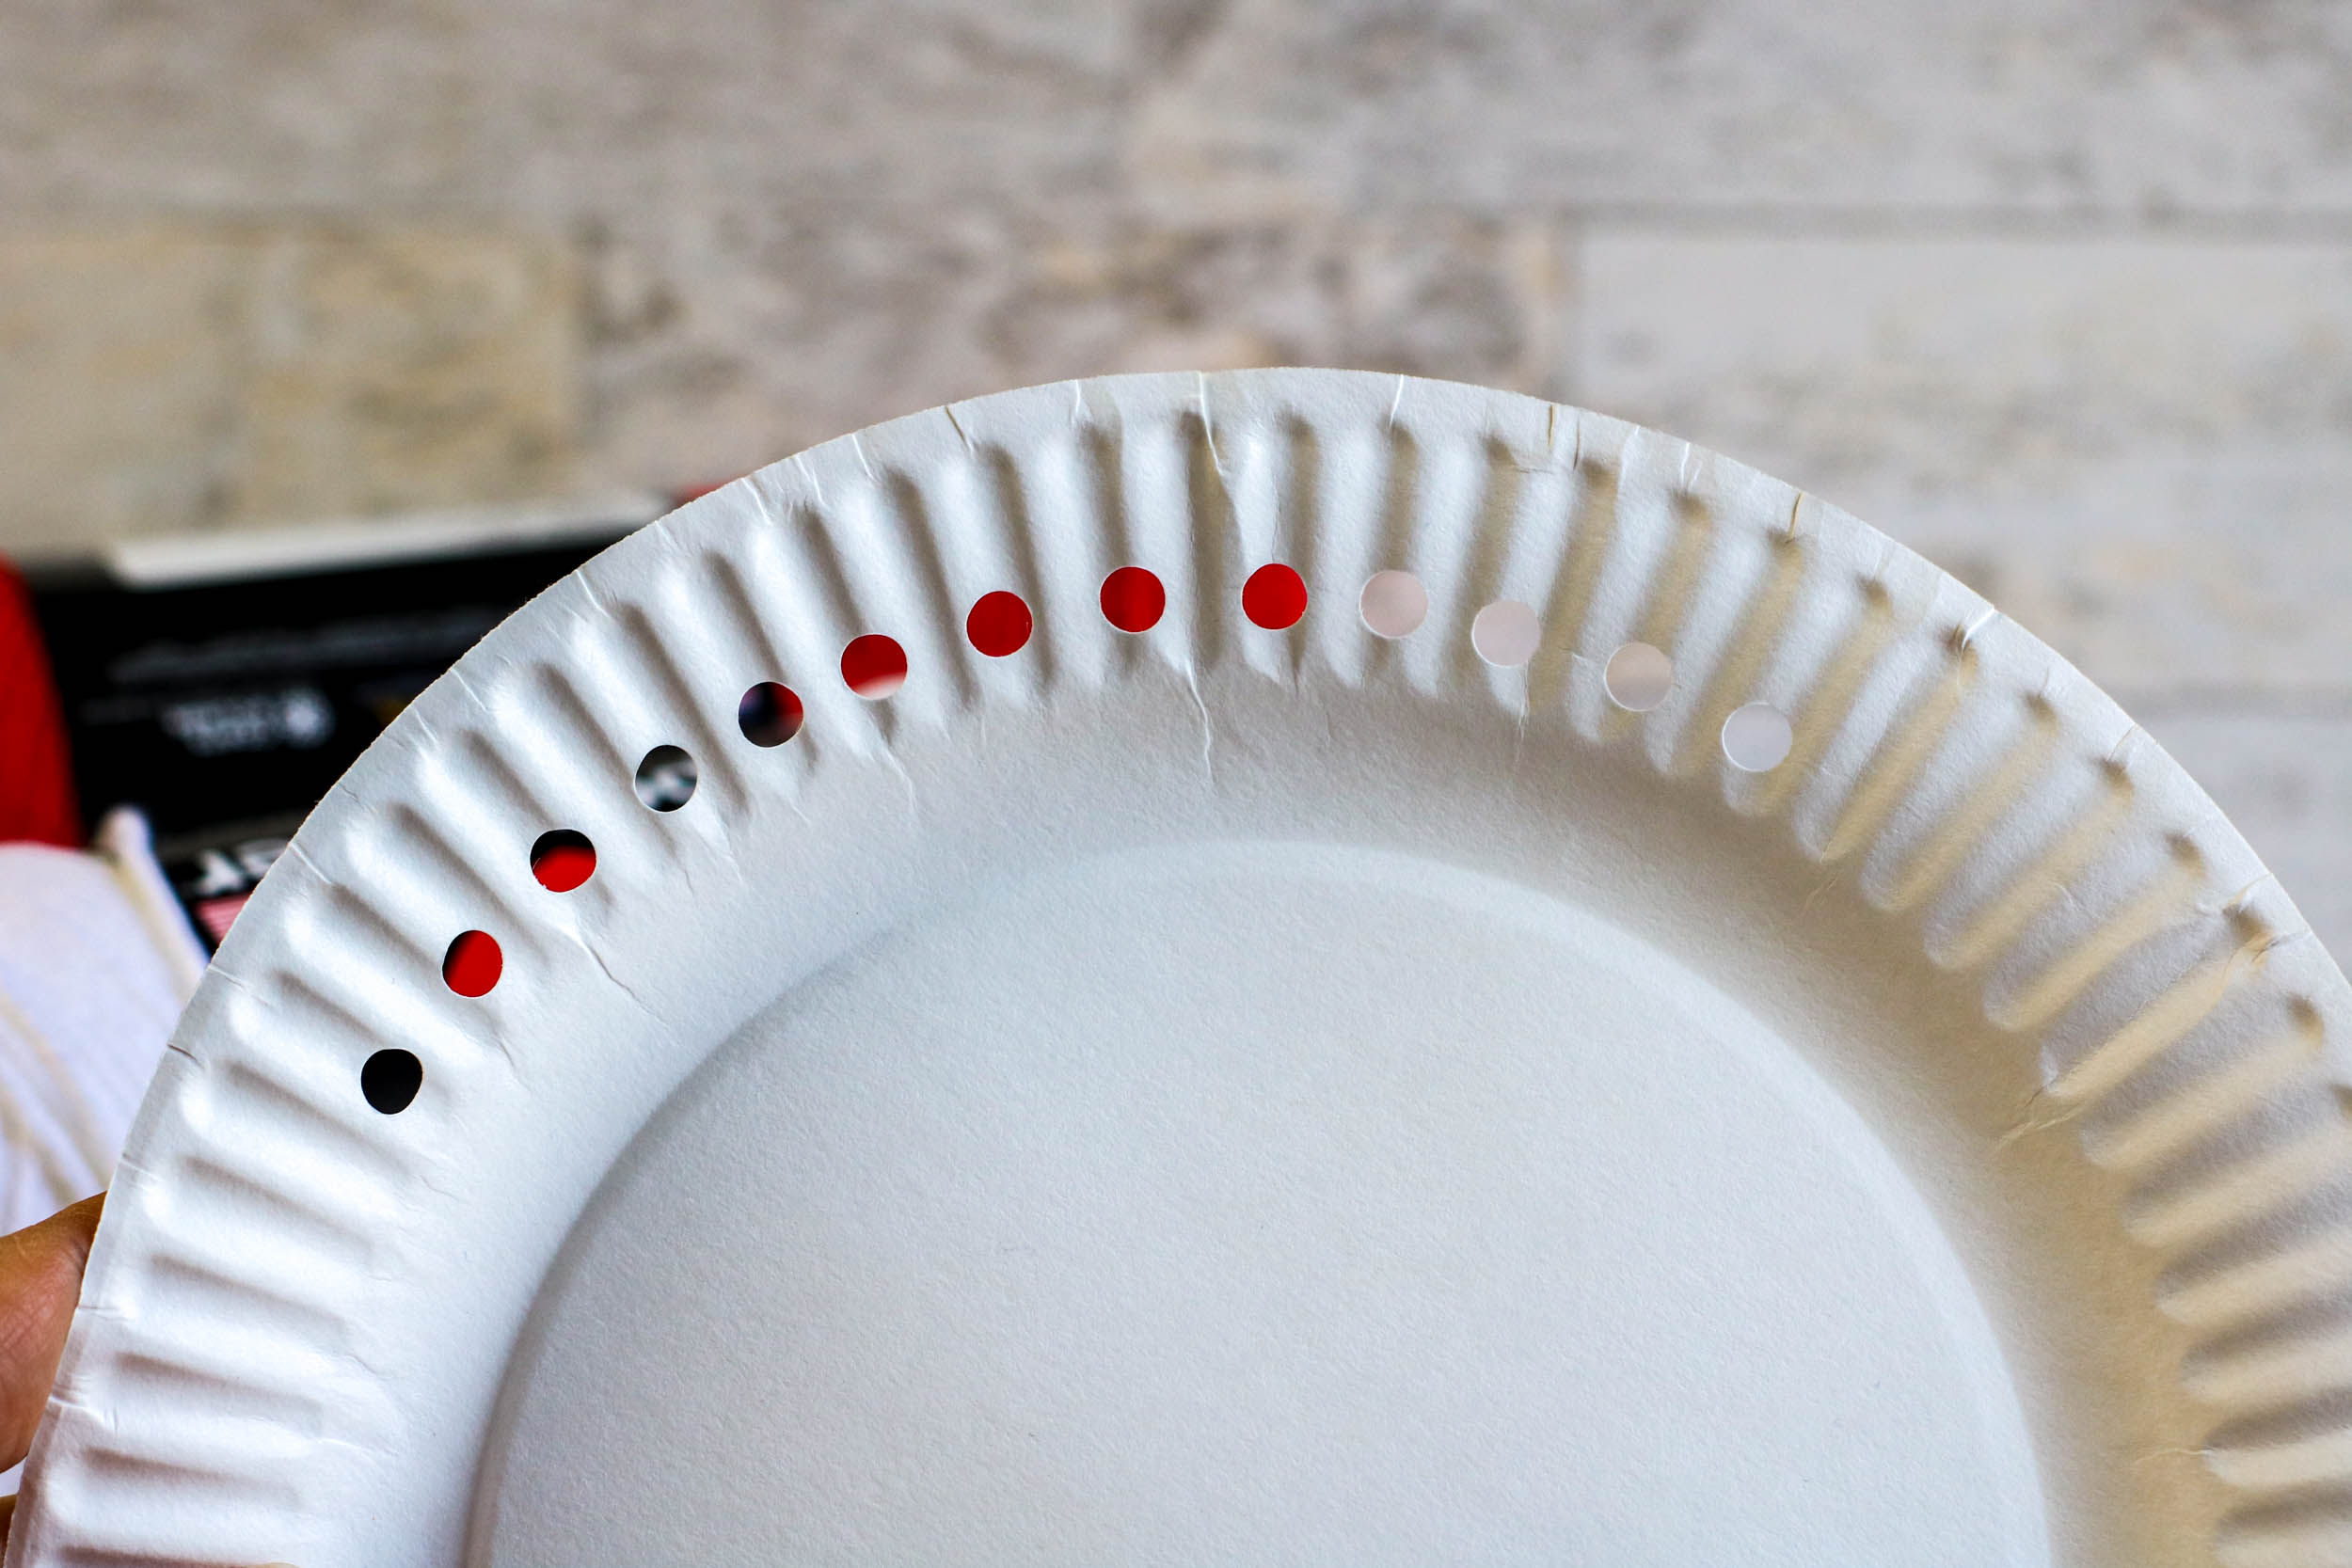 Paper plate with holes